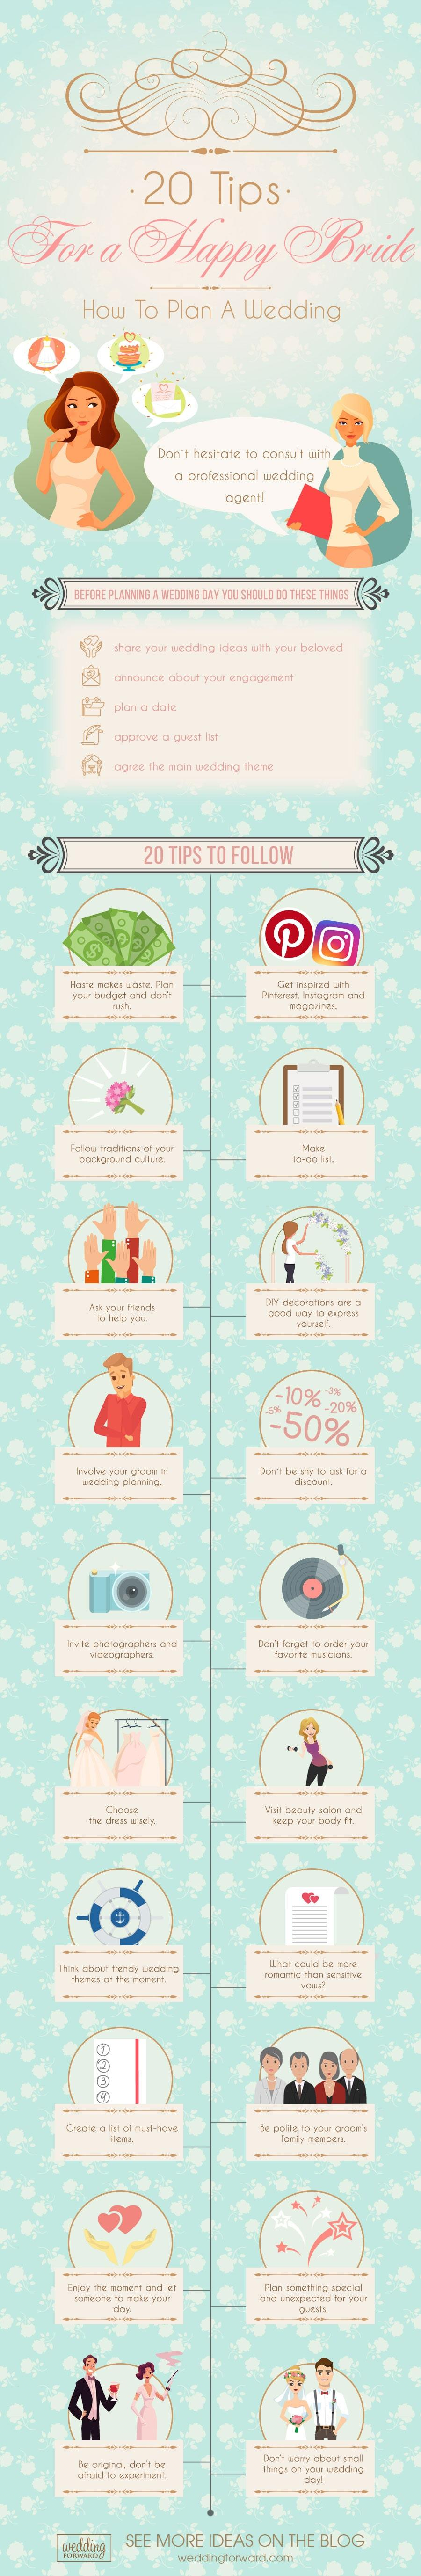 how-to-plan-a-wedding-20-tips-for-a-happy-bride